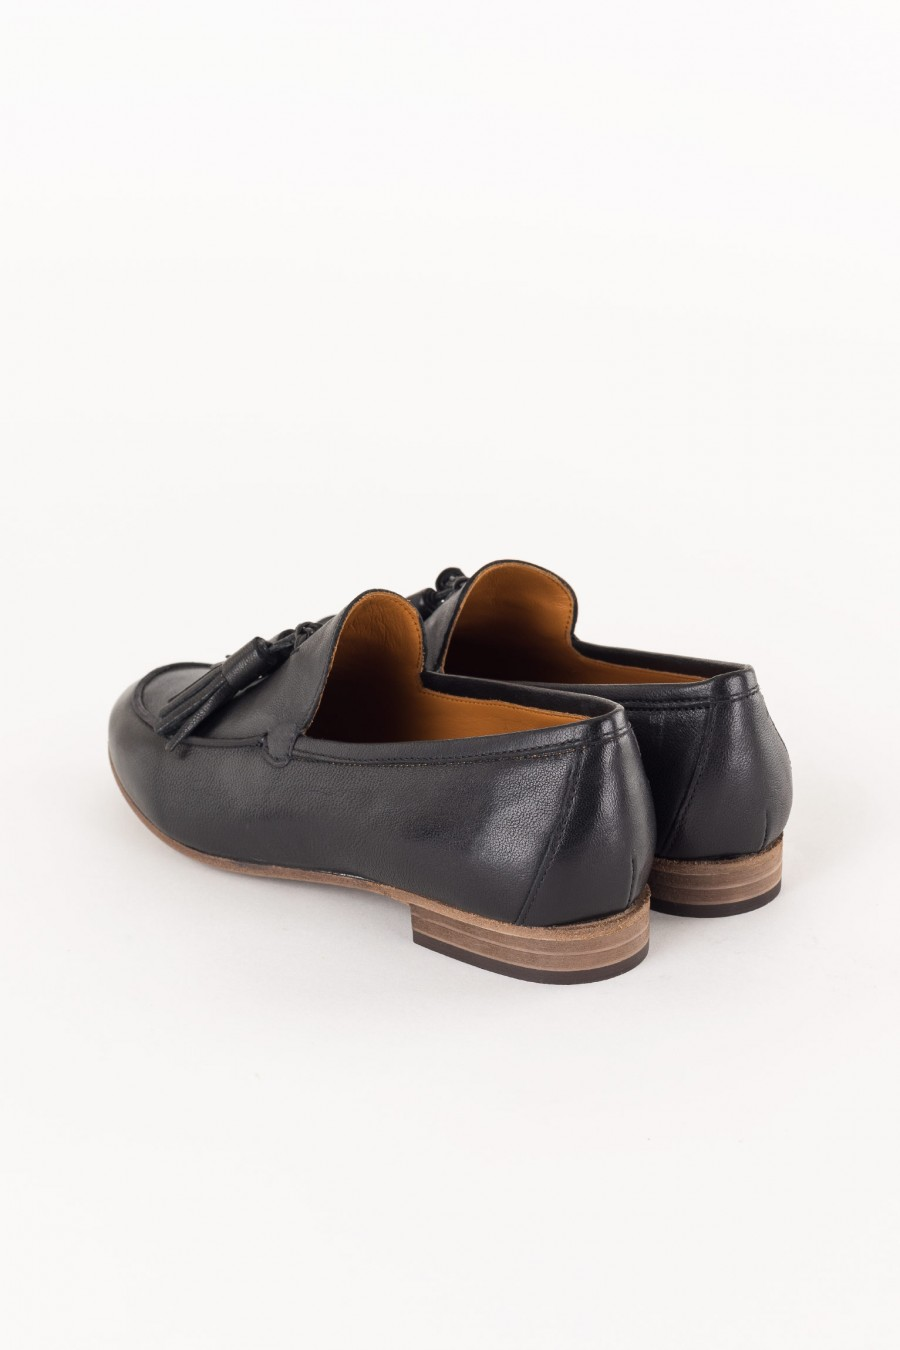 black leather loafer with tassels